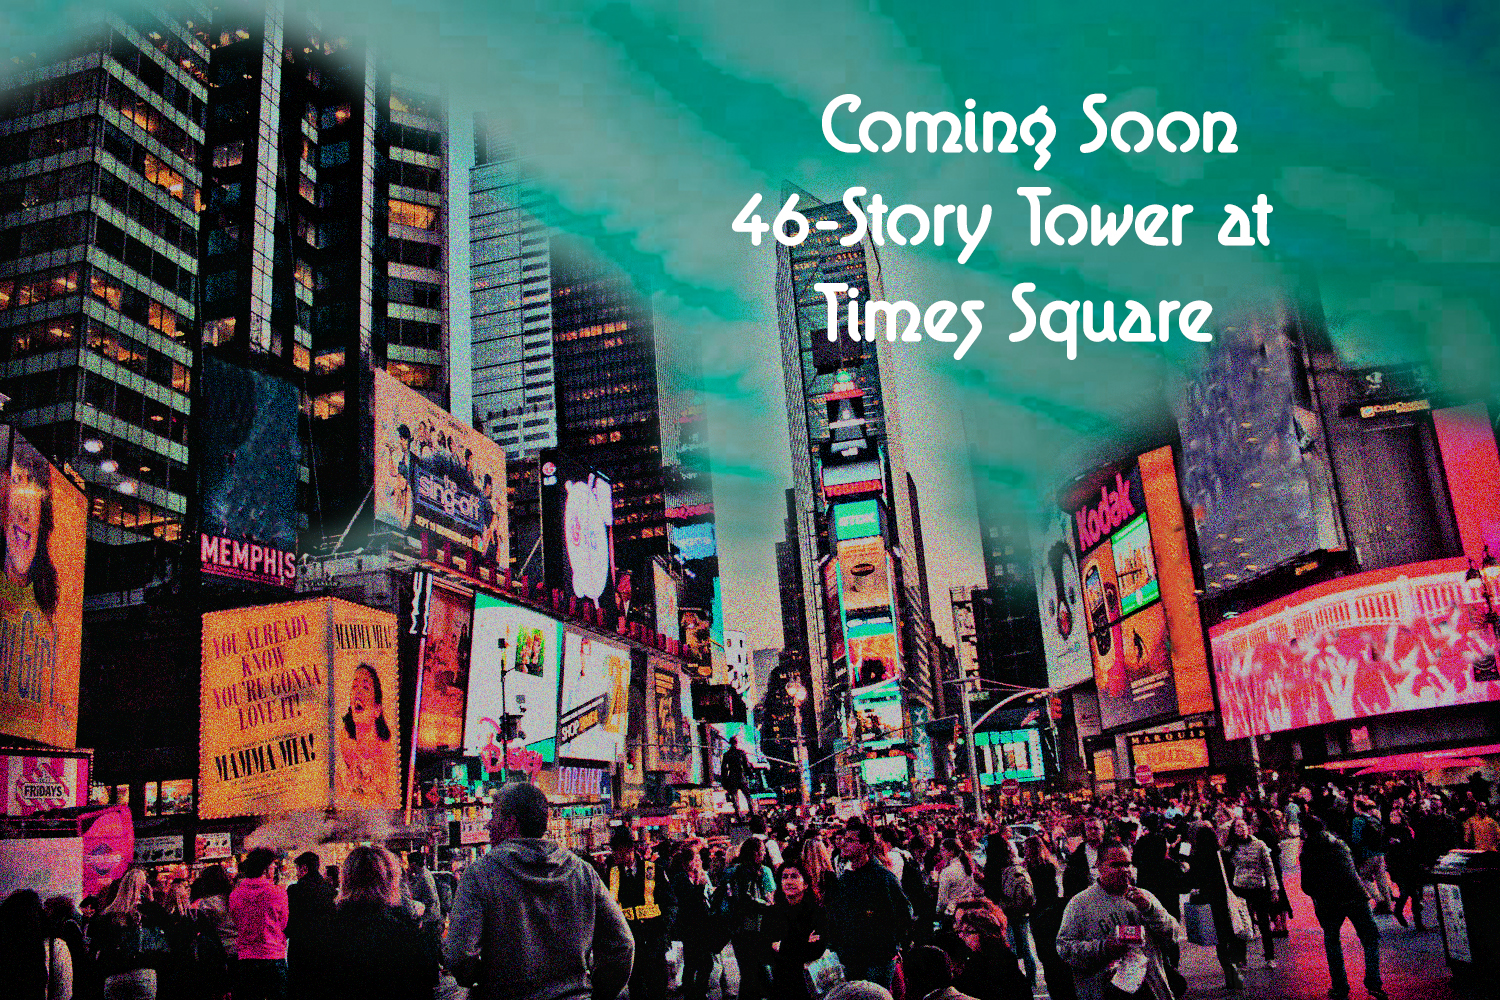 new 46-Story Tower at times square as giant LED billboard